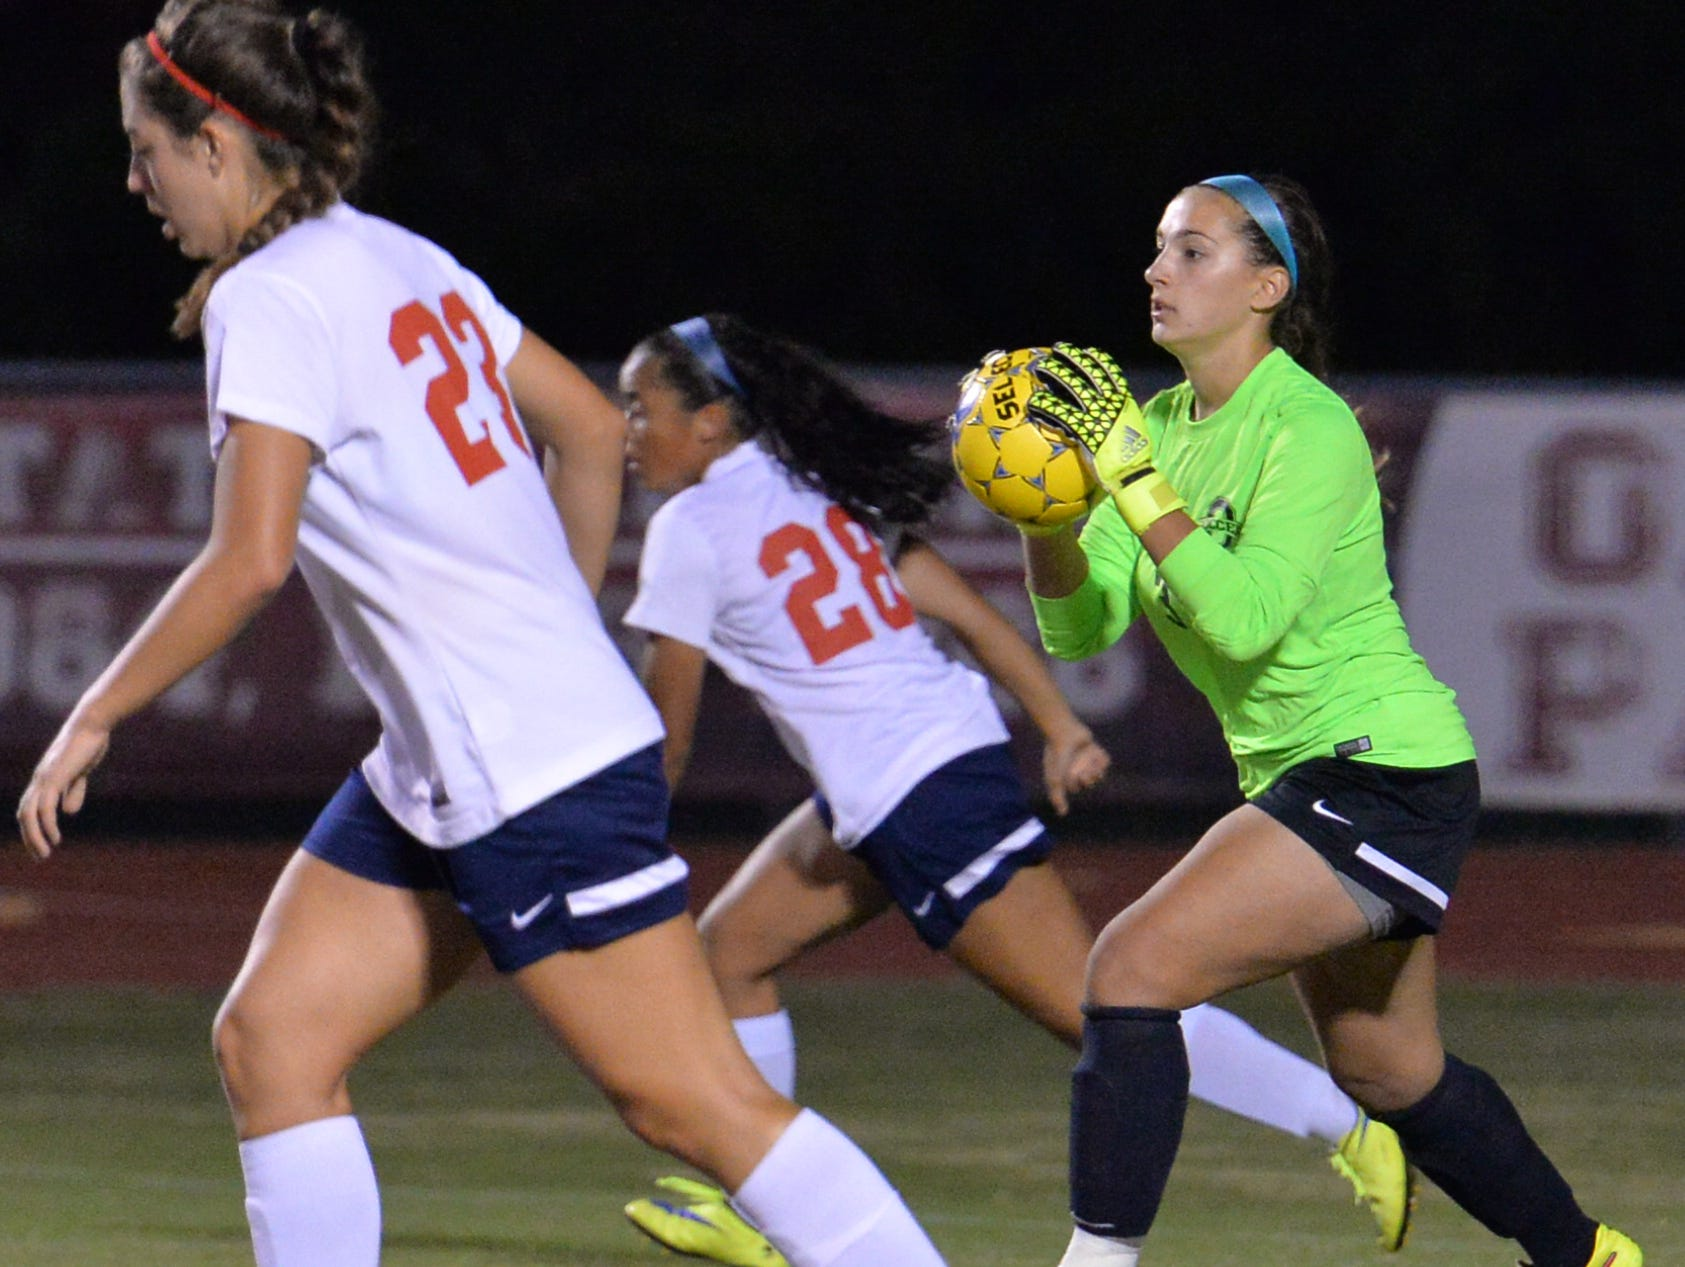 Oakland's Emma Grace Goldman has allowed just one goal in District 7-AAA play this season.